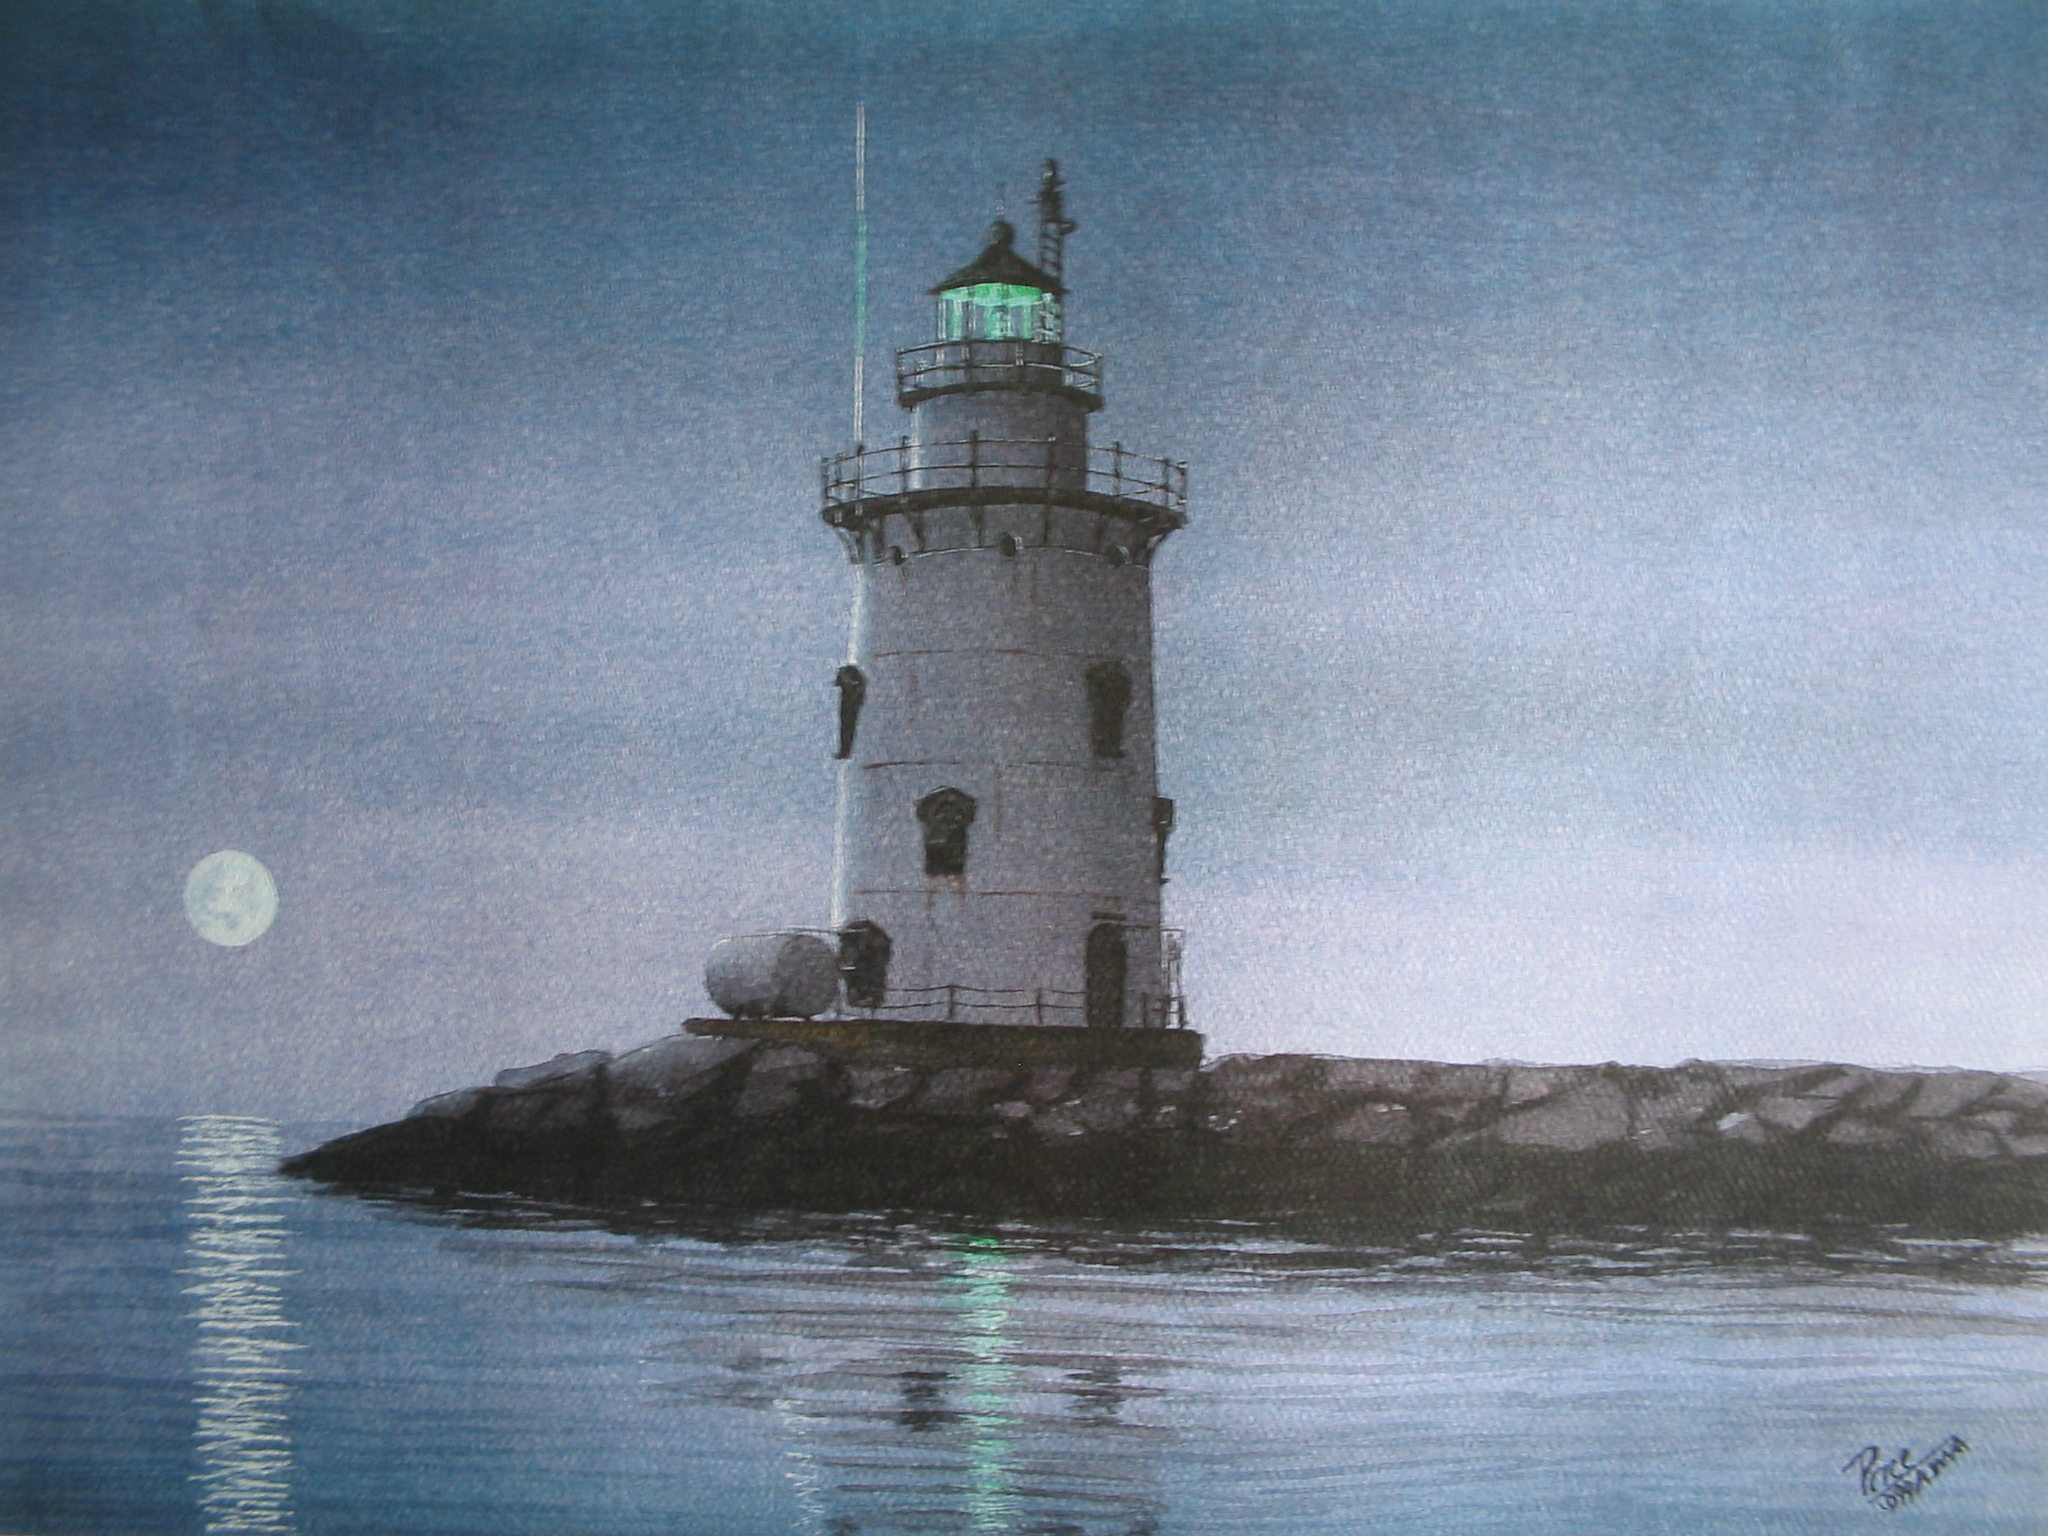 Saybrook Outer Light - Lighthouse Painting by Daniel Price